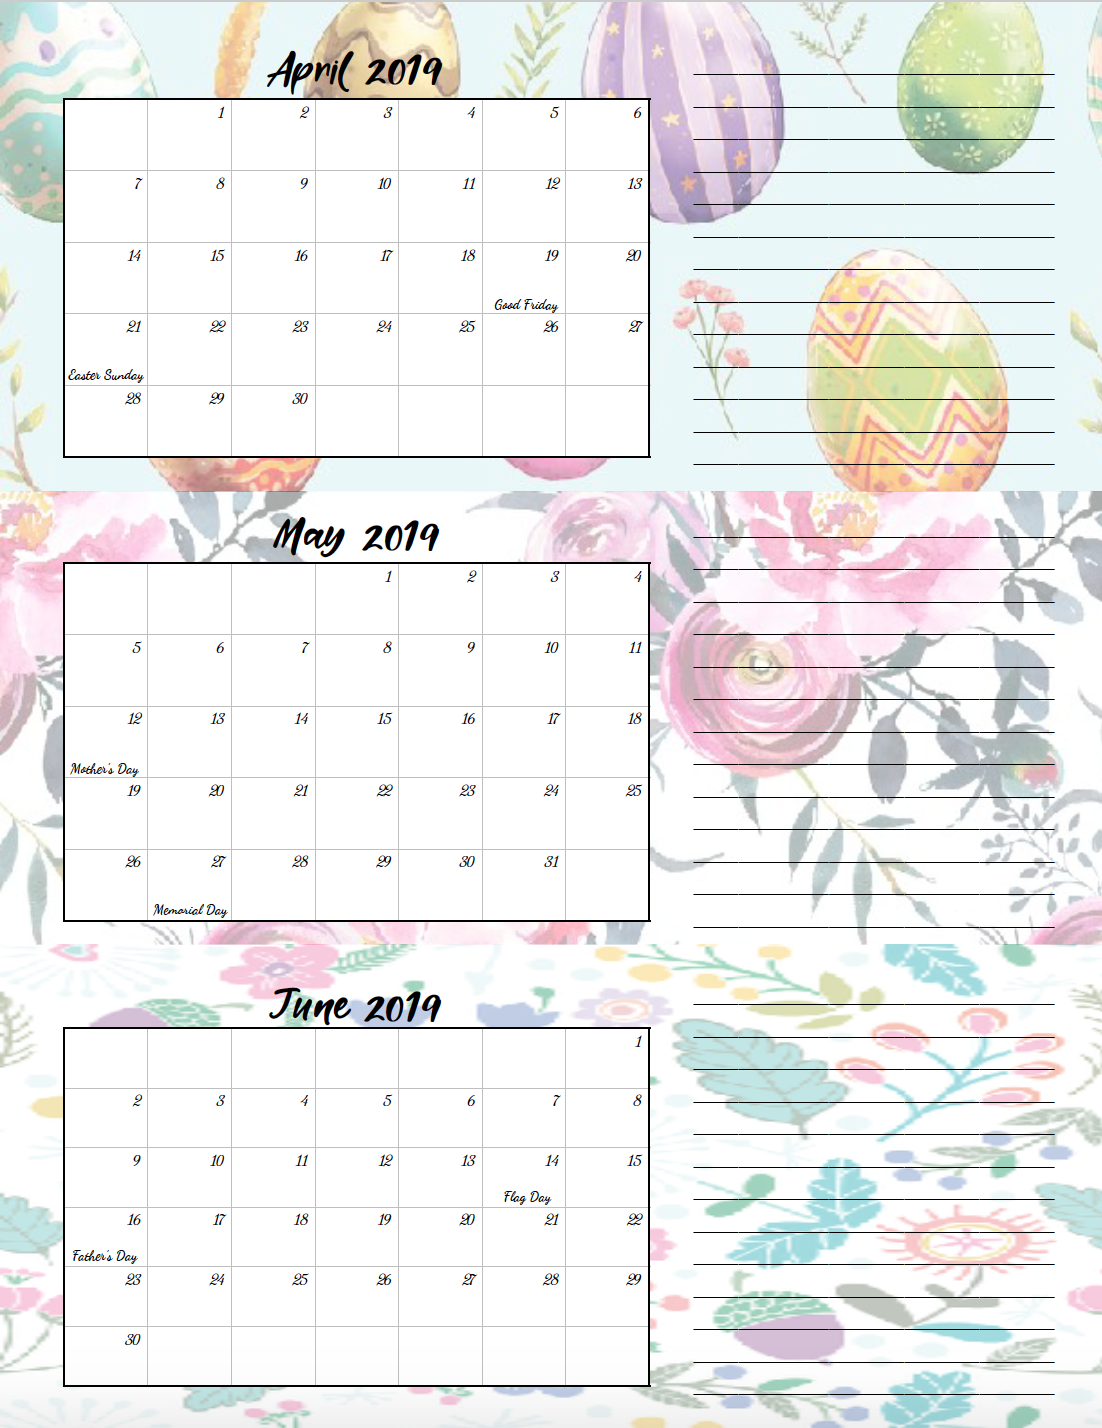 April-June 2019. Free Printable 2019 Quarterly Calendars with Holidays: 3 Designs. Holiday theme, bright and floral theme, and classic elegant theme- choose which works for you! #free #printable #freeprintable #calendars #2019calendars